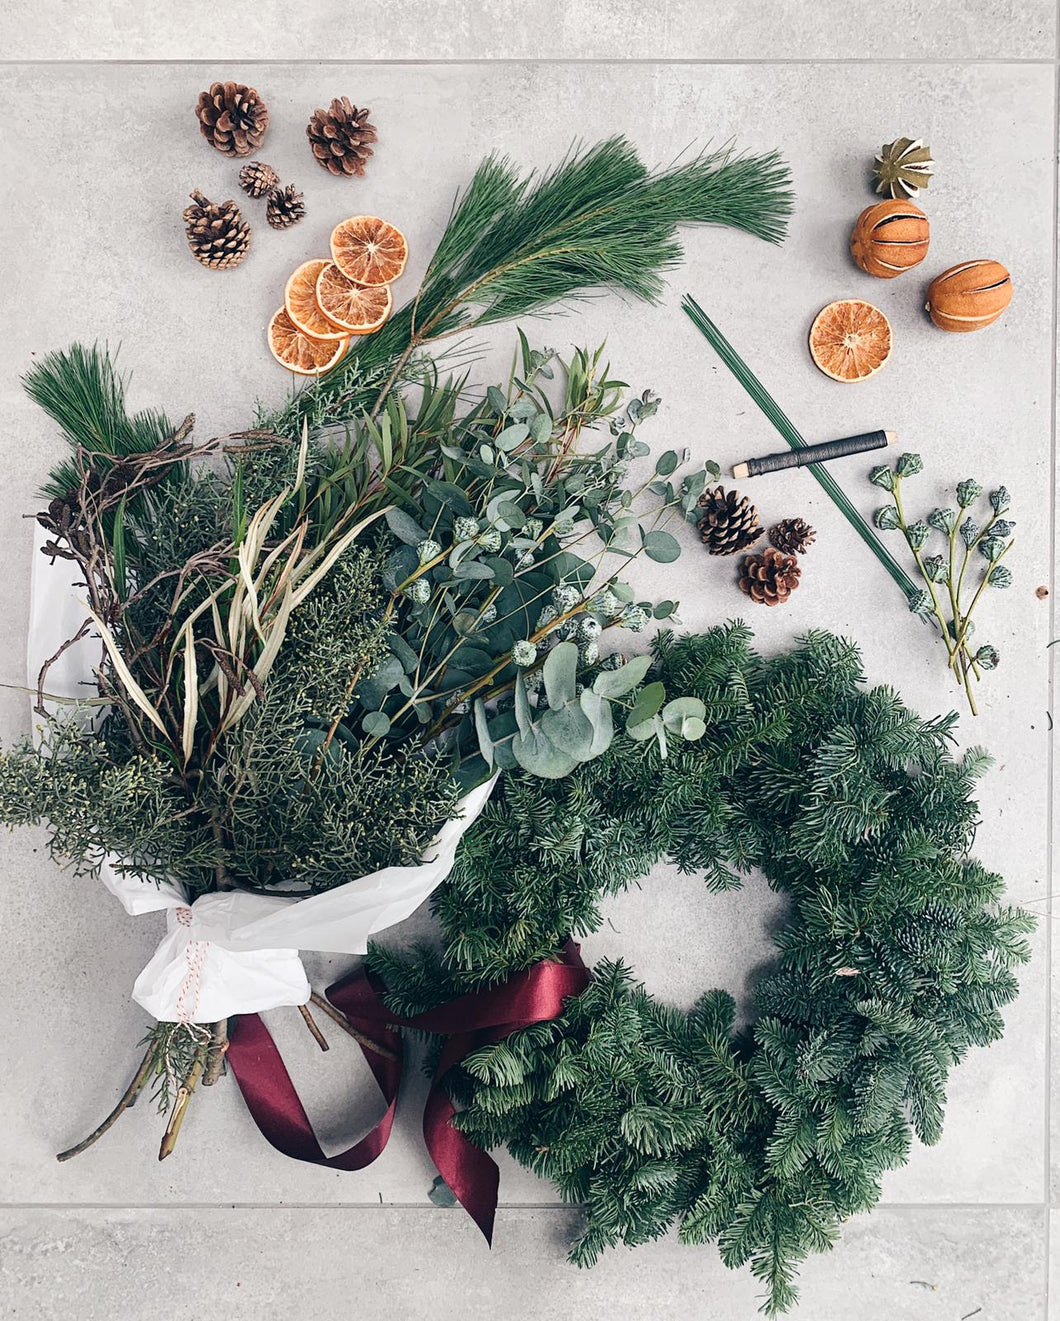 DIY Wreath making kit from Petal and Pot